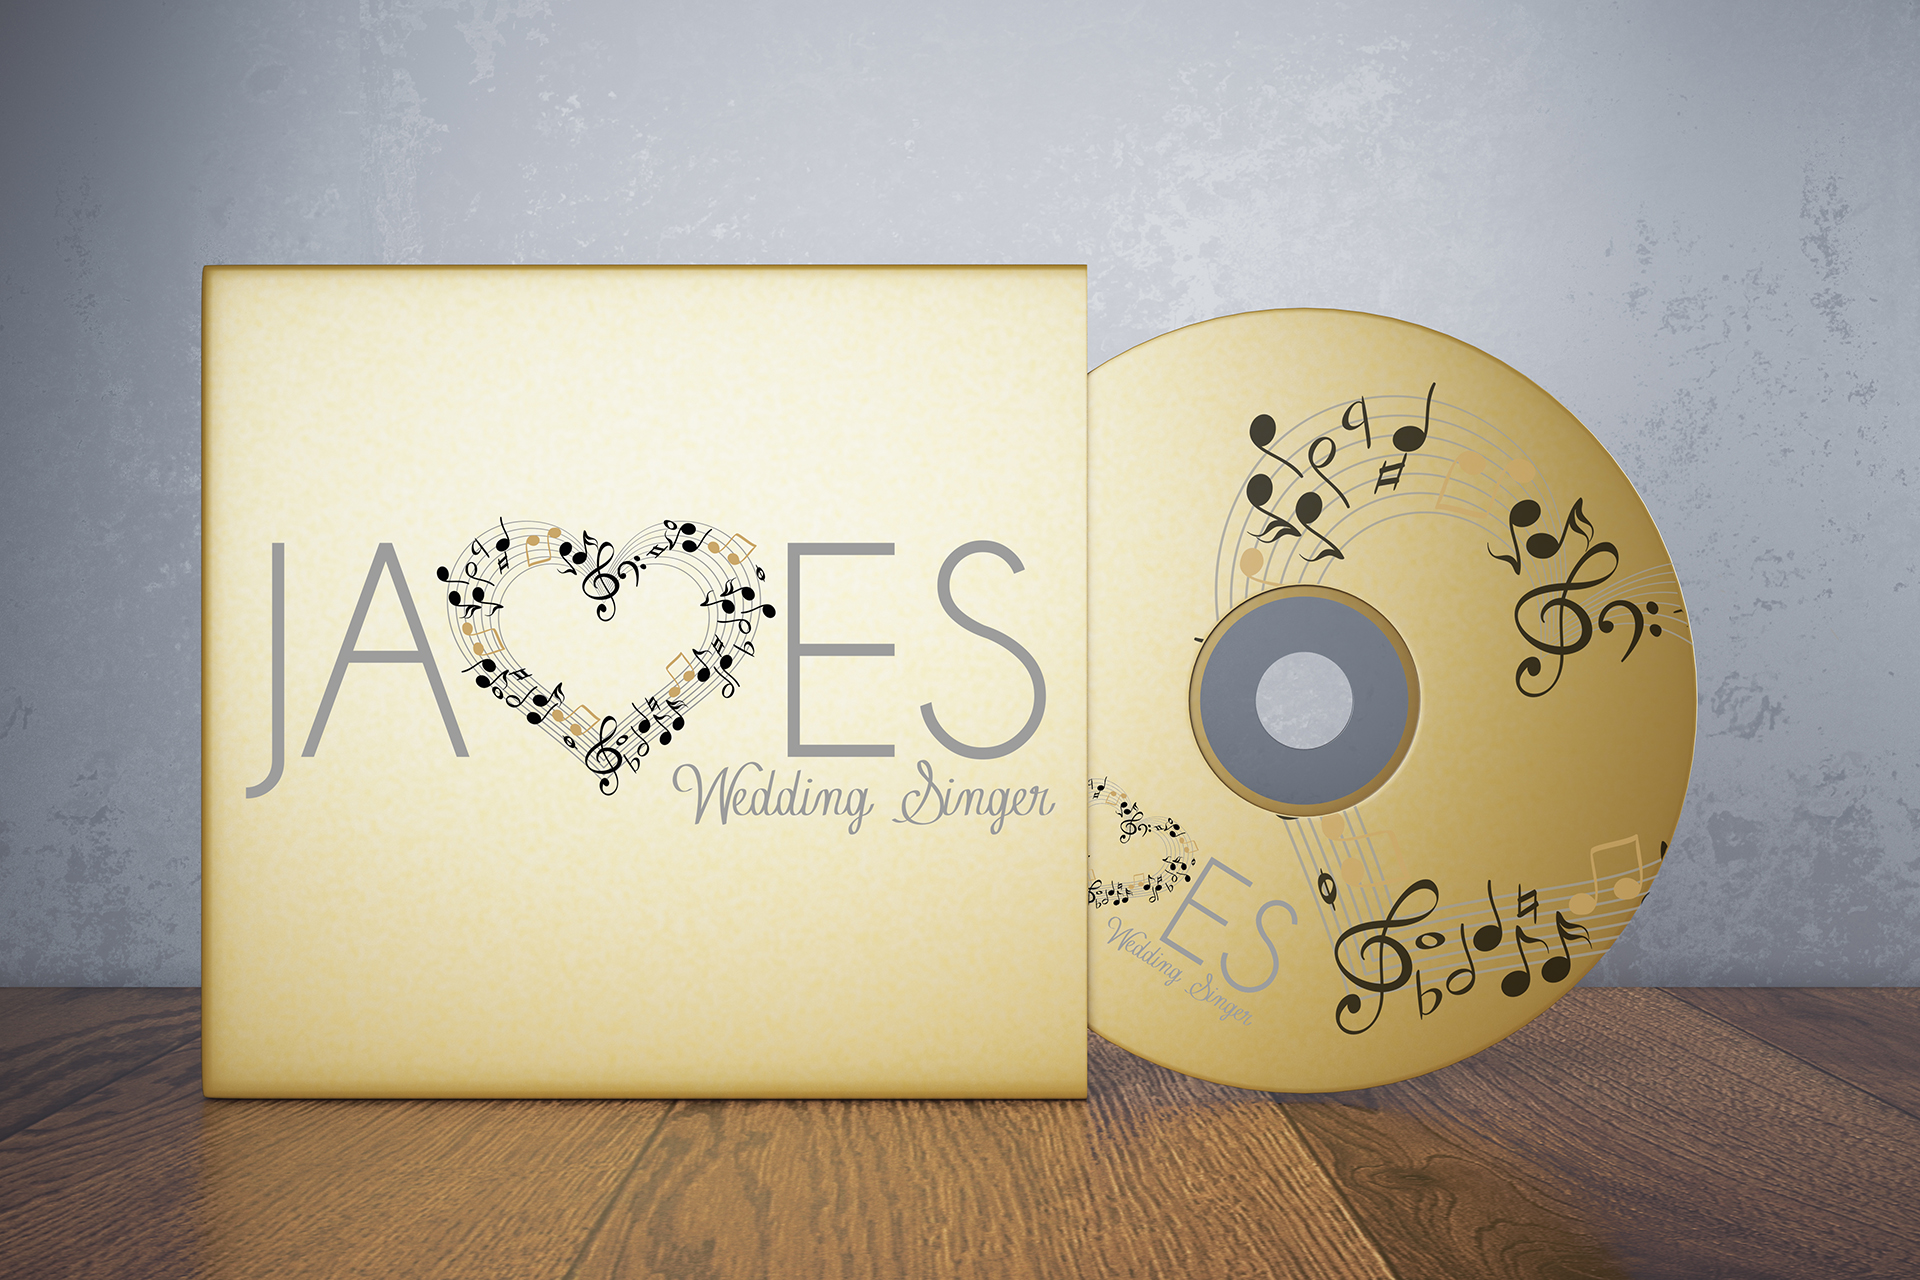 CD Request James Wedding Singer | Wedding singer Manchester | cheshire